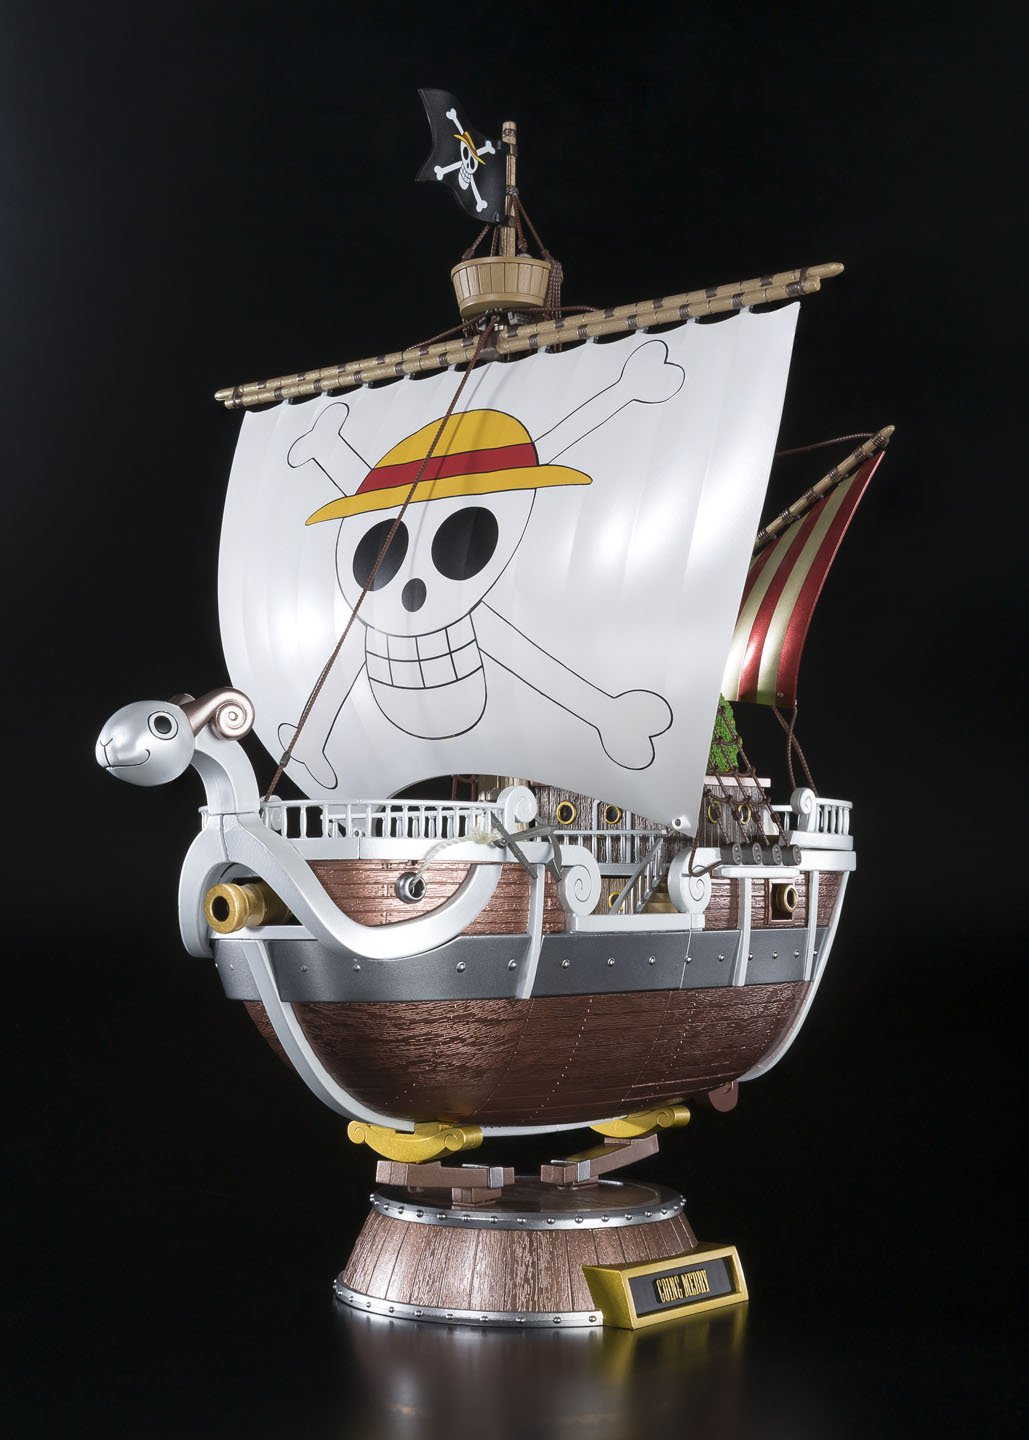 Cyogokin ONE Piece Going Merry ONE Piece 20th Anniversary ver Approximately 280 mm ABS /& Die Cast /& PVC Made Painted Movable Figure Bandai BDIOP192909